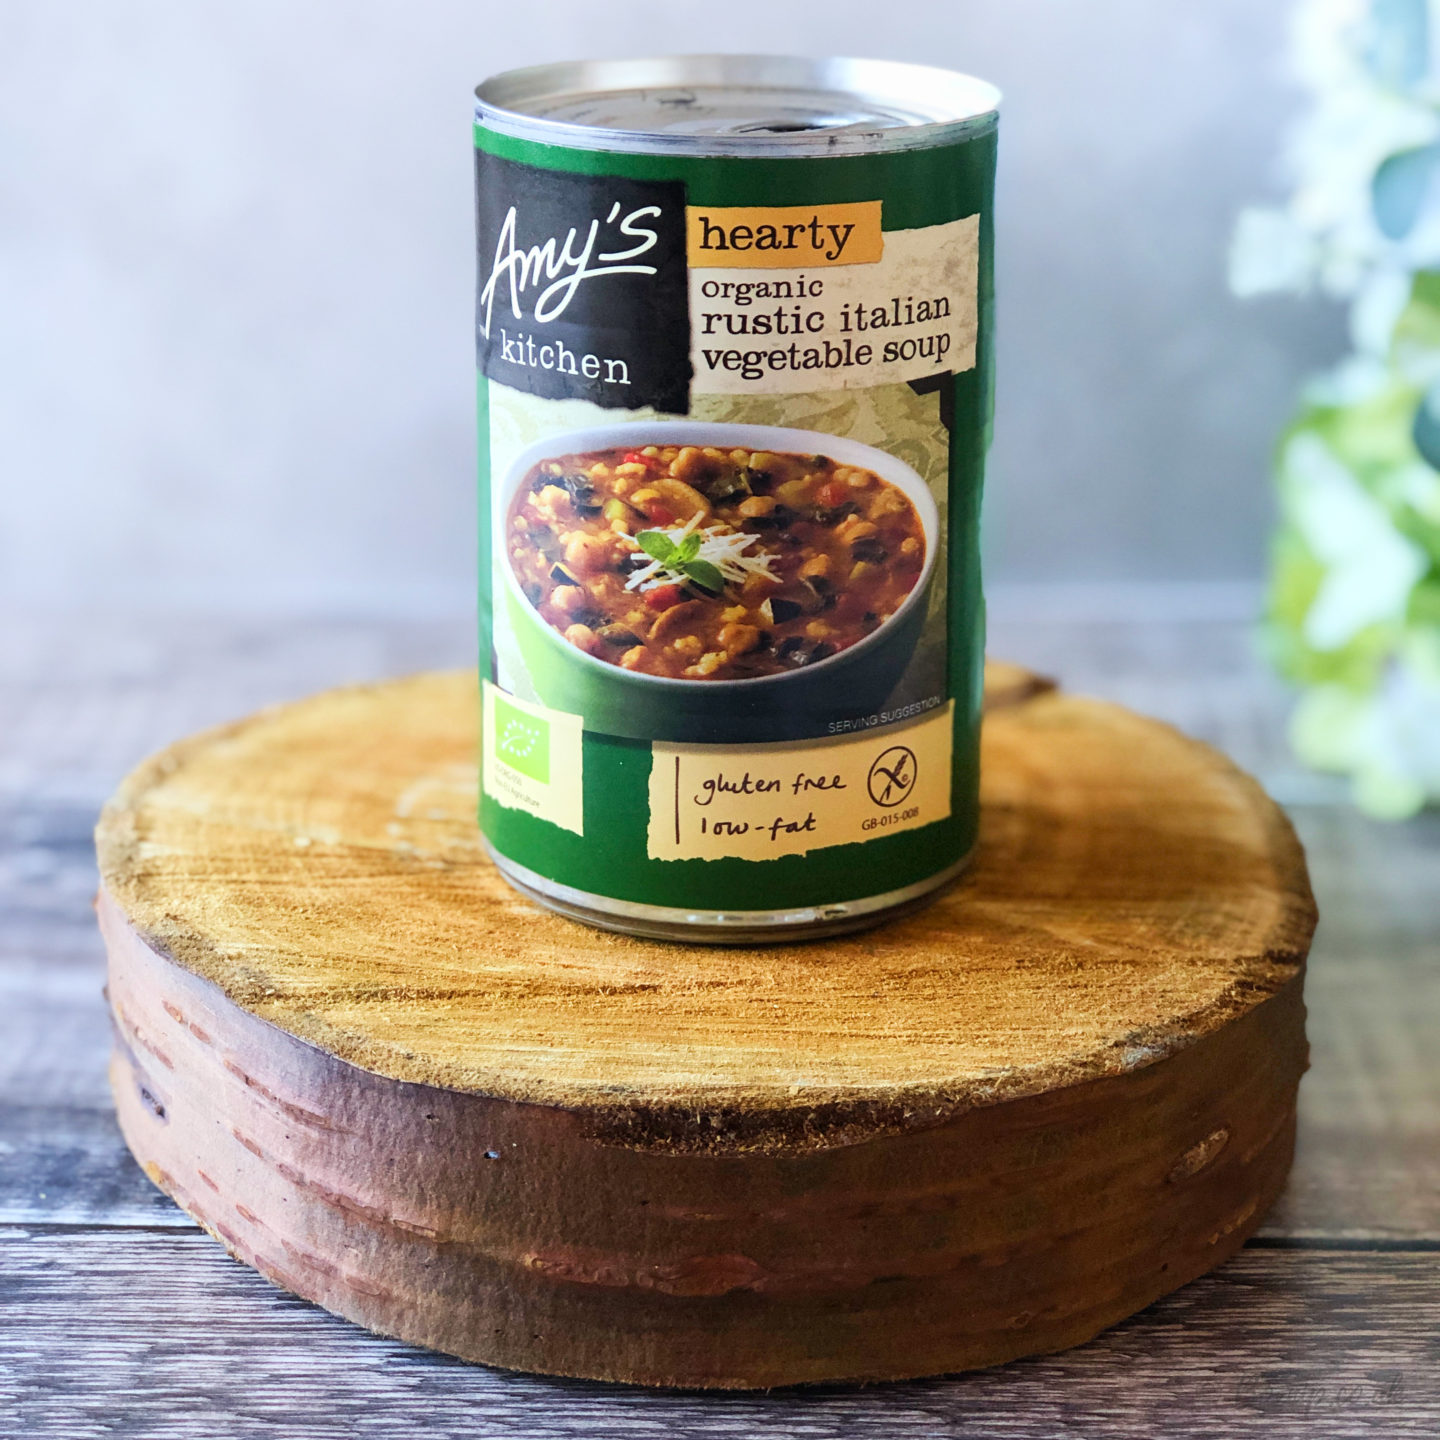 Amy's Kitchen Organic Hearty Rustic Italian Vegetable Soup - October 2019 Degusta Box